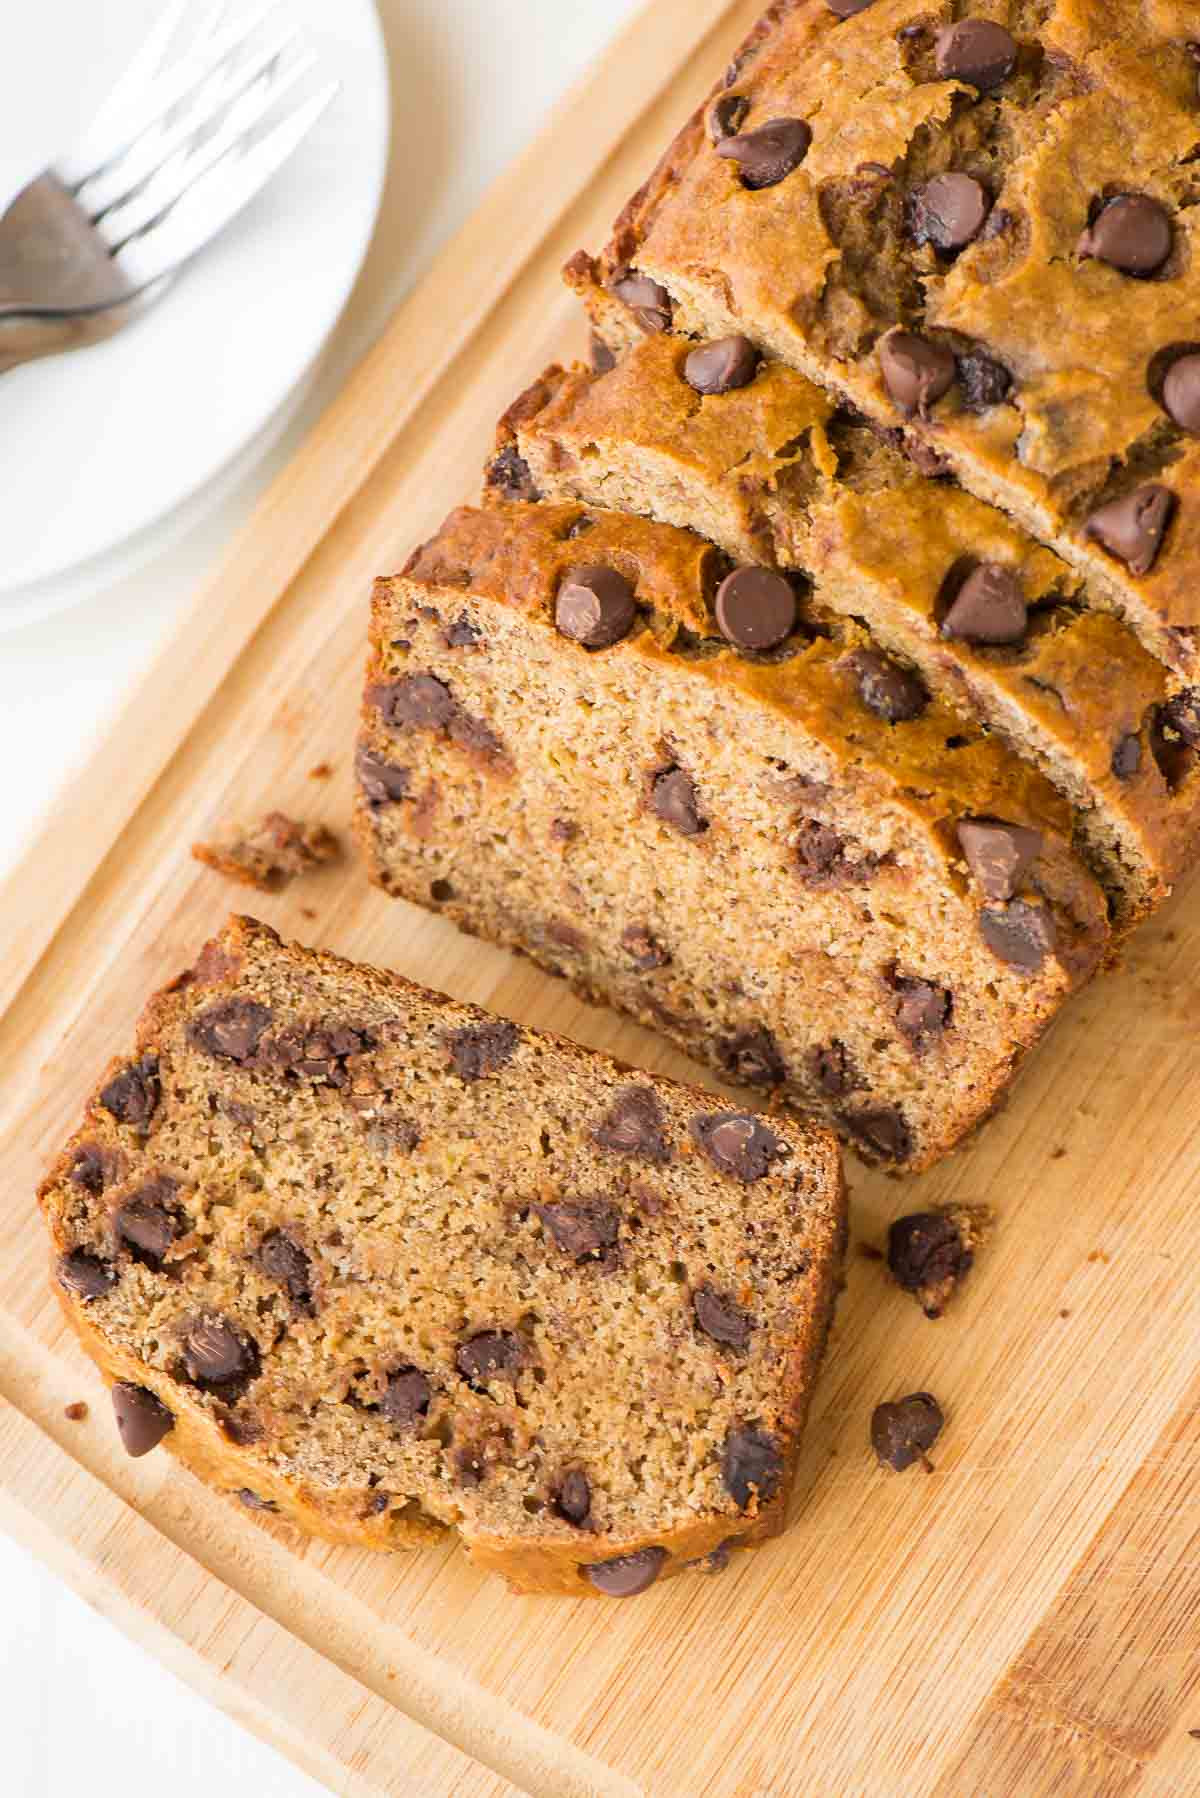 Banana Bread Ingredients  Healthy Banana Bread Recipe with Chocolate Chips